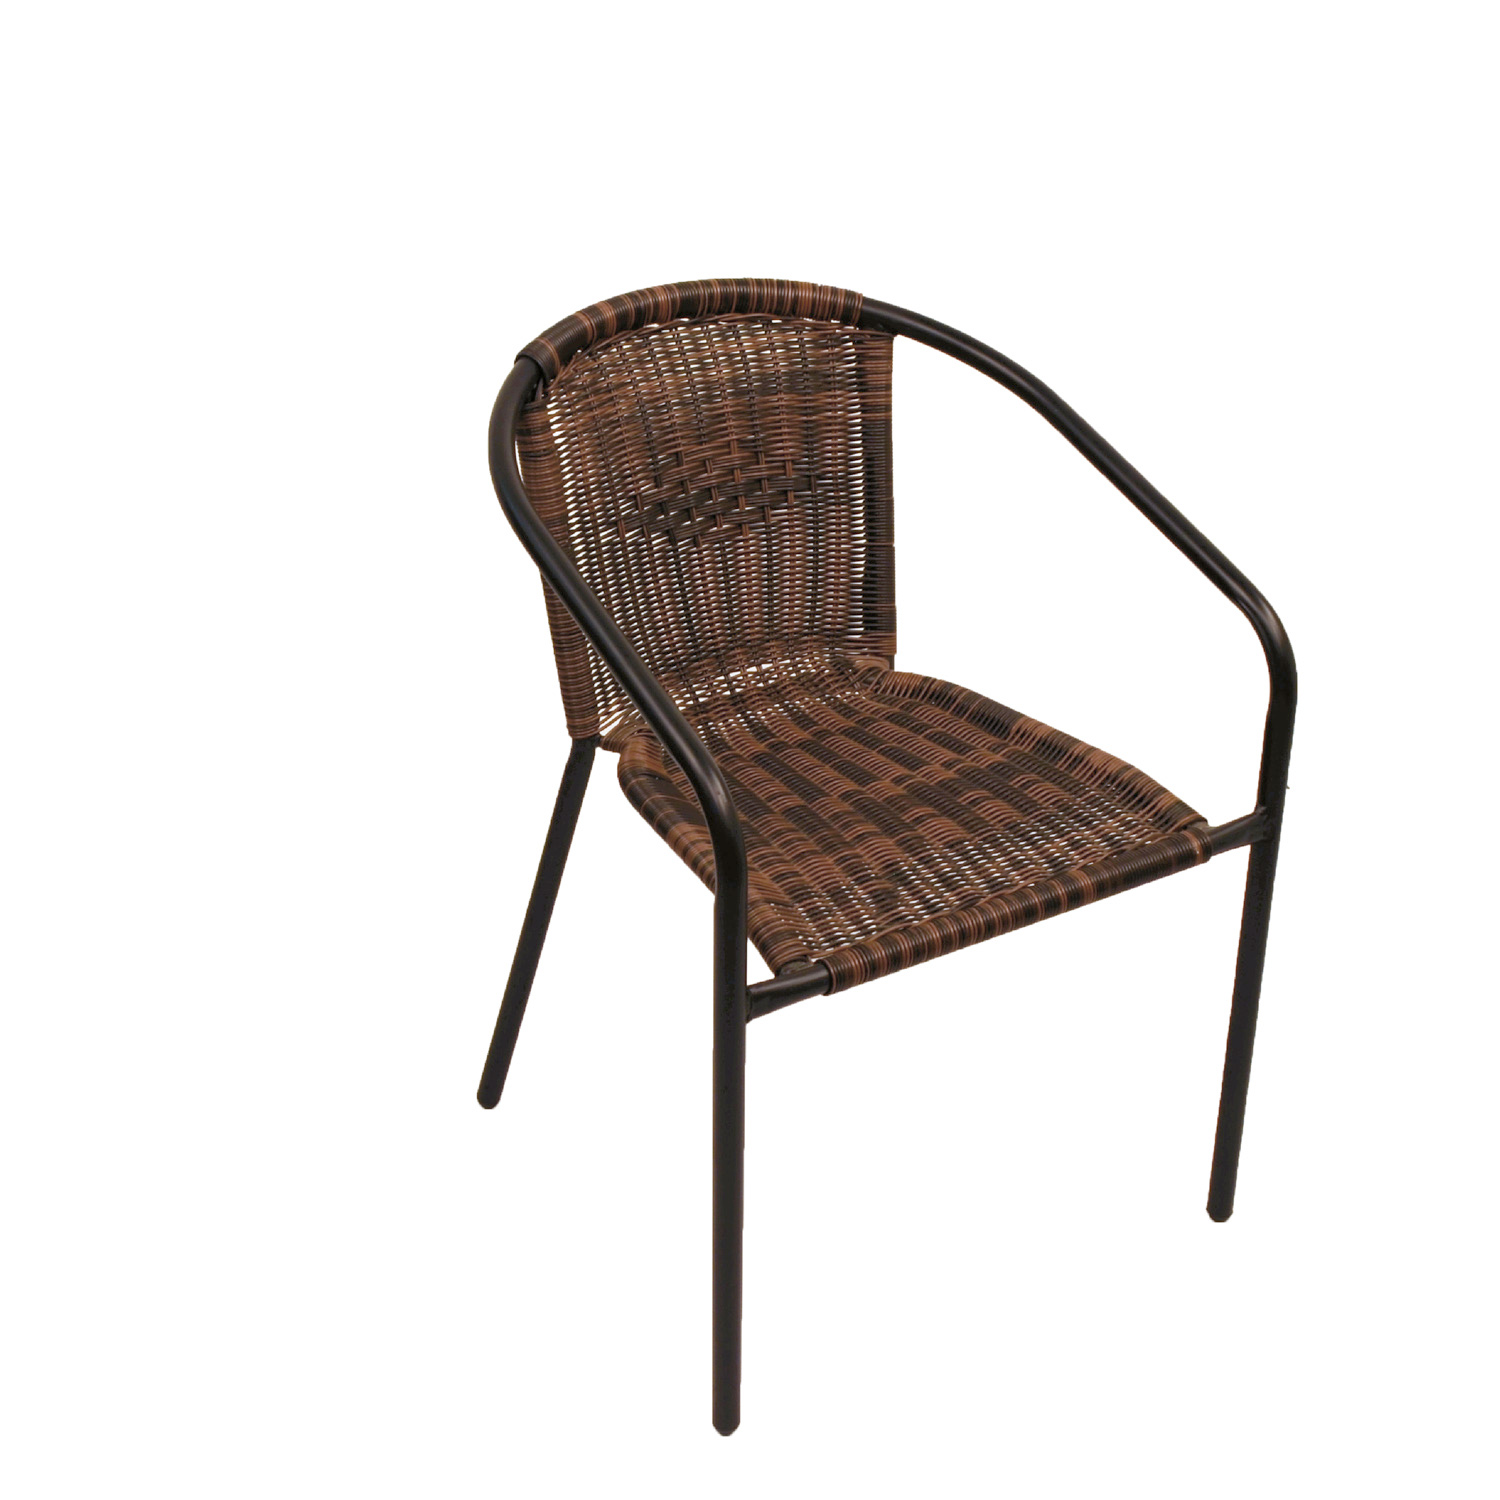 Europa Leisure San Remo Outdoor Chair Pack of 2 - Ruby's Garden Boutique